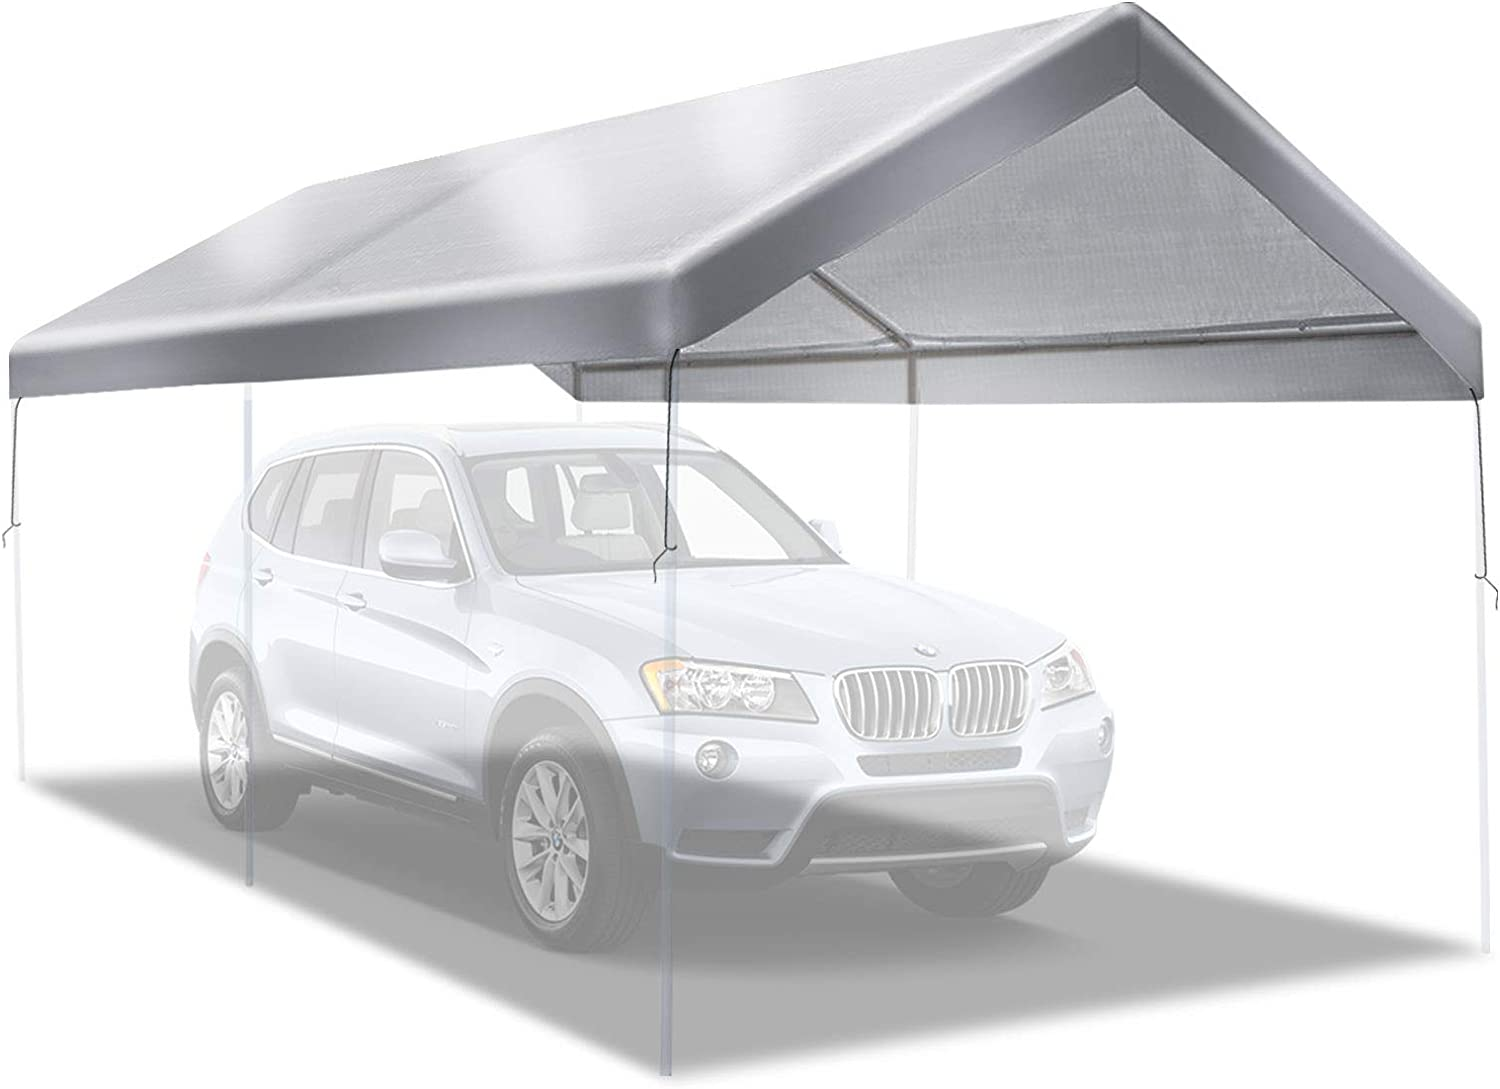 BenefitUSA Canopy ONLY 10'x20' Replacement 5 ☆ National uniform free shipping popular Outdoo Carport